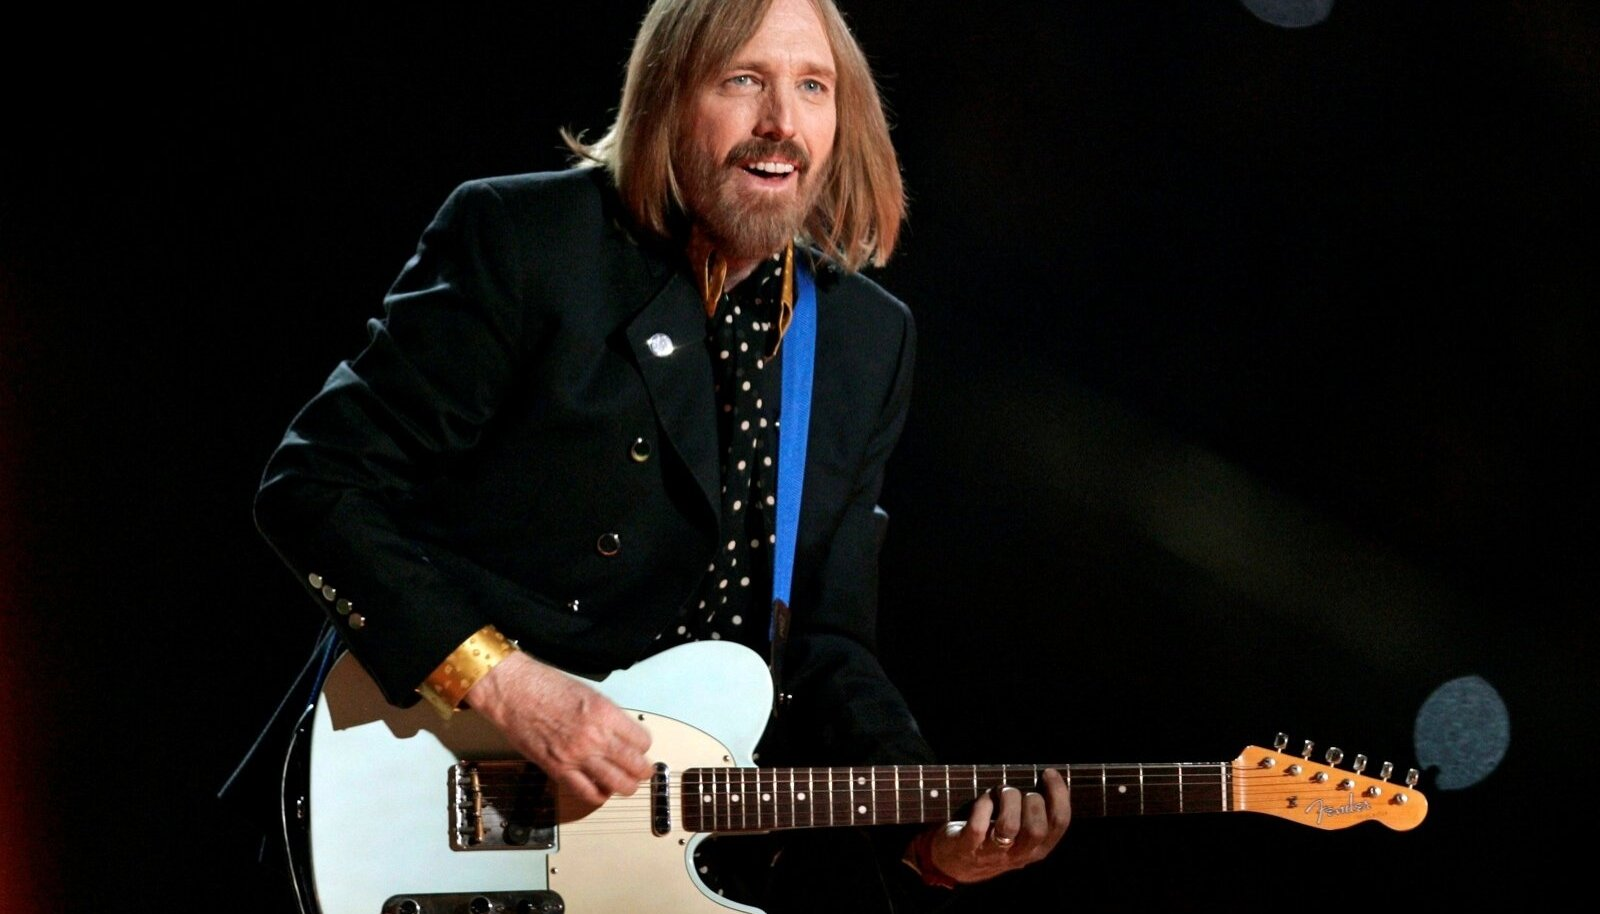 FILE PHOTO: Singer Tom Petty and the Heartbreakers perform during the half time show at Super Bowl XLII in Glendale